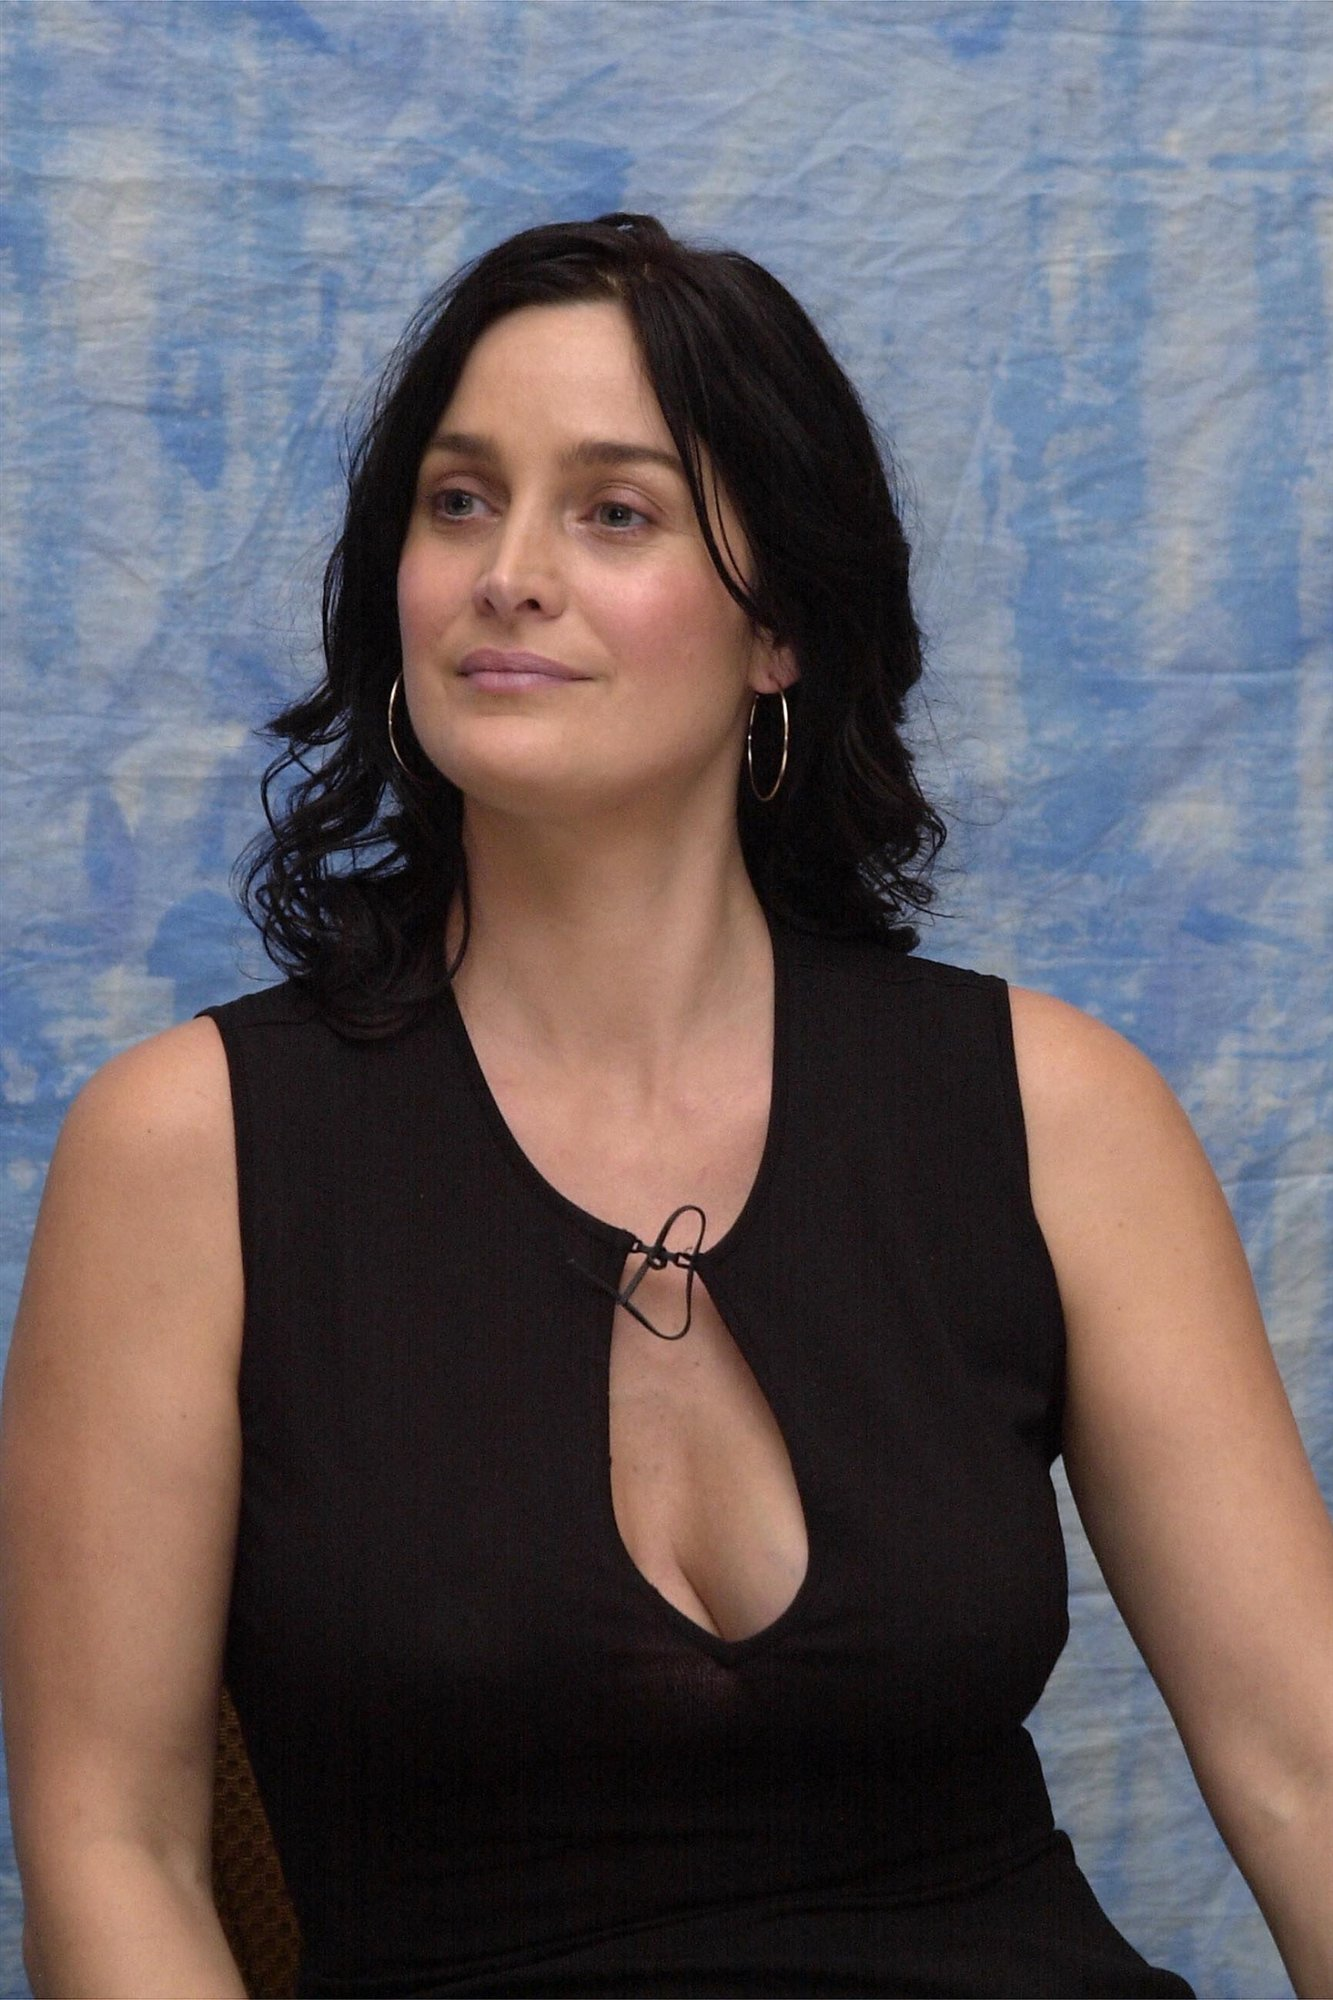 Mobile Hd Wallpapers Quotes Carrie Anne Moss Alchetron Hd Wallpapers